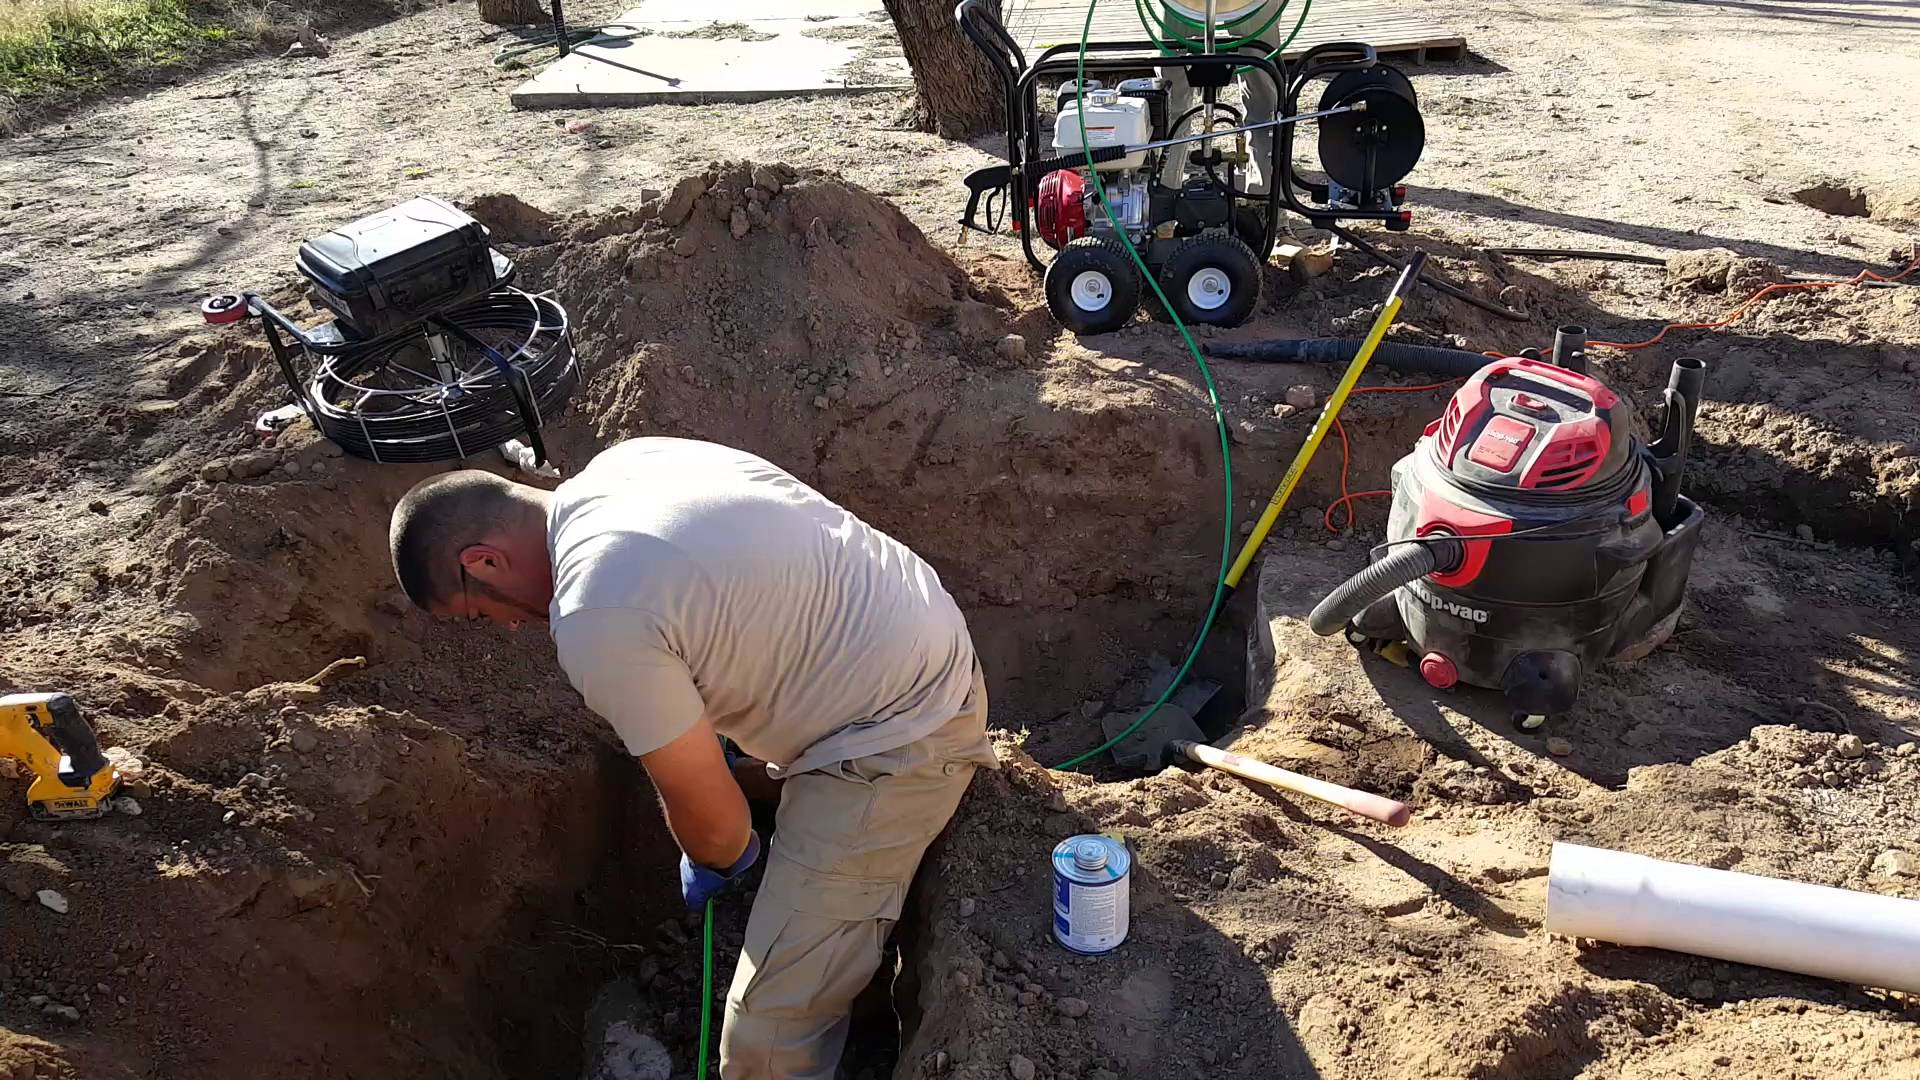 Anthony-El Paso TX Septic Tank Pumping, Installation, & Repairs-We offer Septic Service & Repairs, Septic Tank Installations, Septic Tank Cleaning, Commercial, Septic System, Drain Cleaning, Line Snaking, Portable Toilet, Grease Trap Pumping & Cleaning, Septic Tank Pumping, Sewage Pump, Sewer Line Repair, Septic Tank Replacement, Septic Maintenance, Sewer Line Replacement, Porta Potty Rentals, and more.